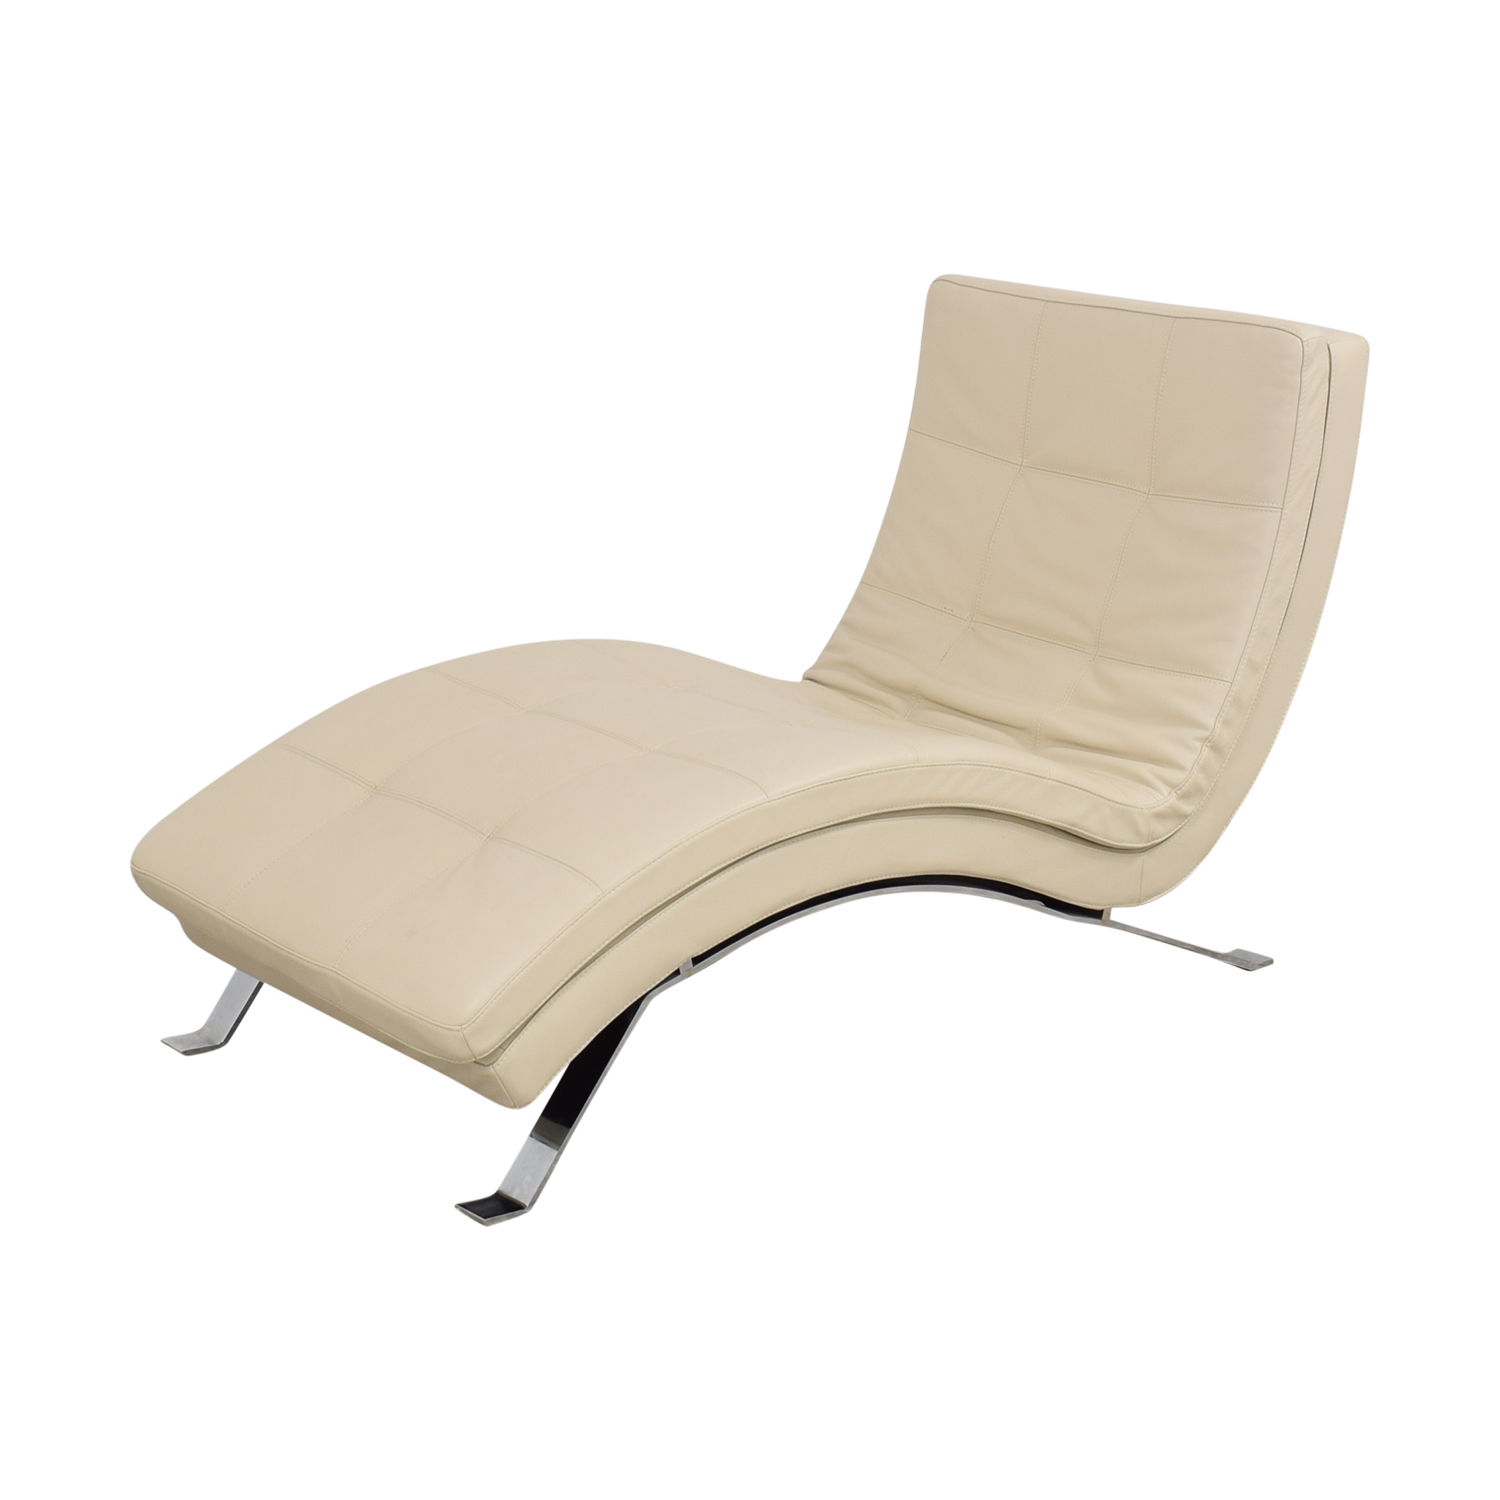 Lind Lind 903 Recliner Armless Long Chaise coupon